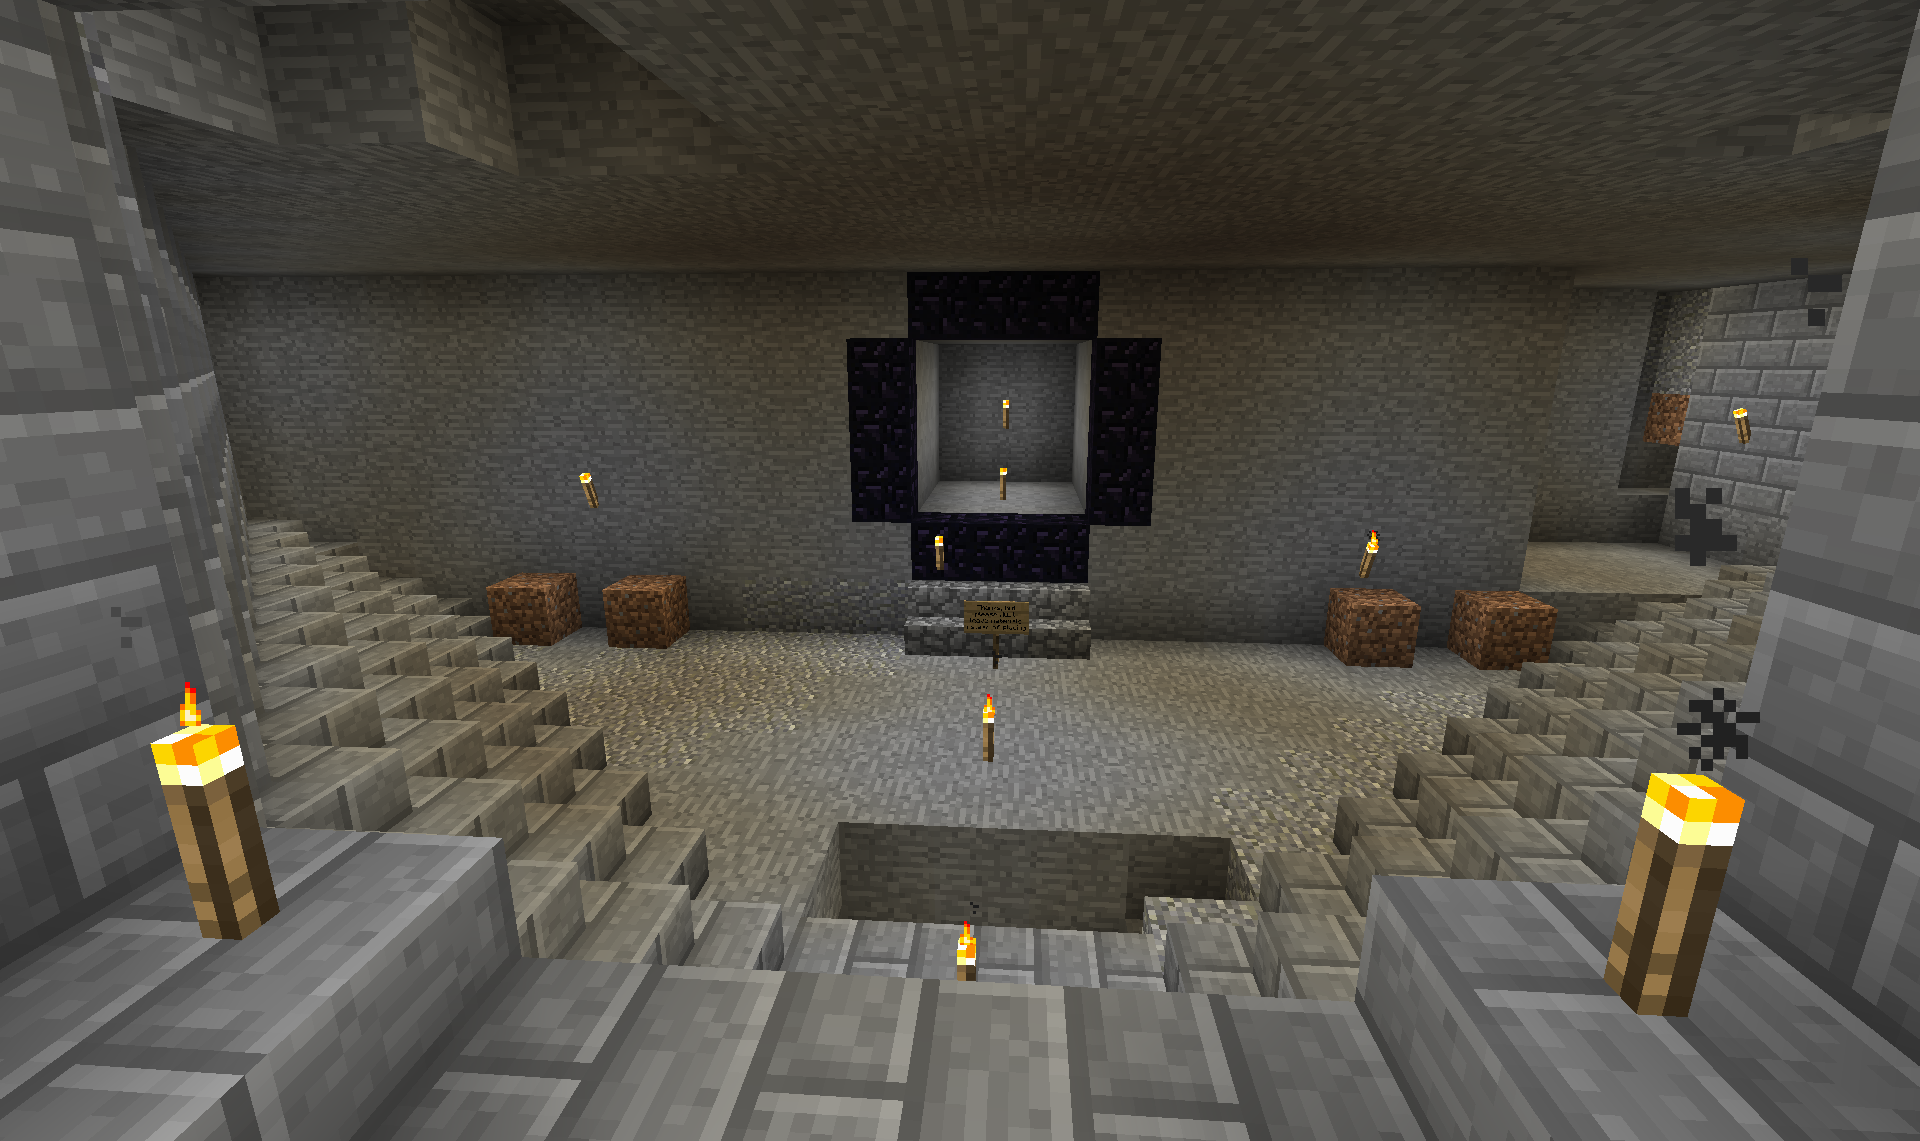 The nether portal room proper. That's... not how I want the the portal to look, but that was a gift from another person I said could stay in one of the rooms in the living quarters. I'll have to take it down and remake it in a really sweet cool-looking fashion.